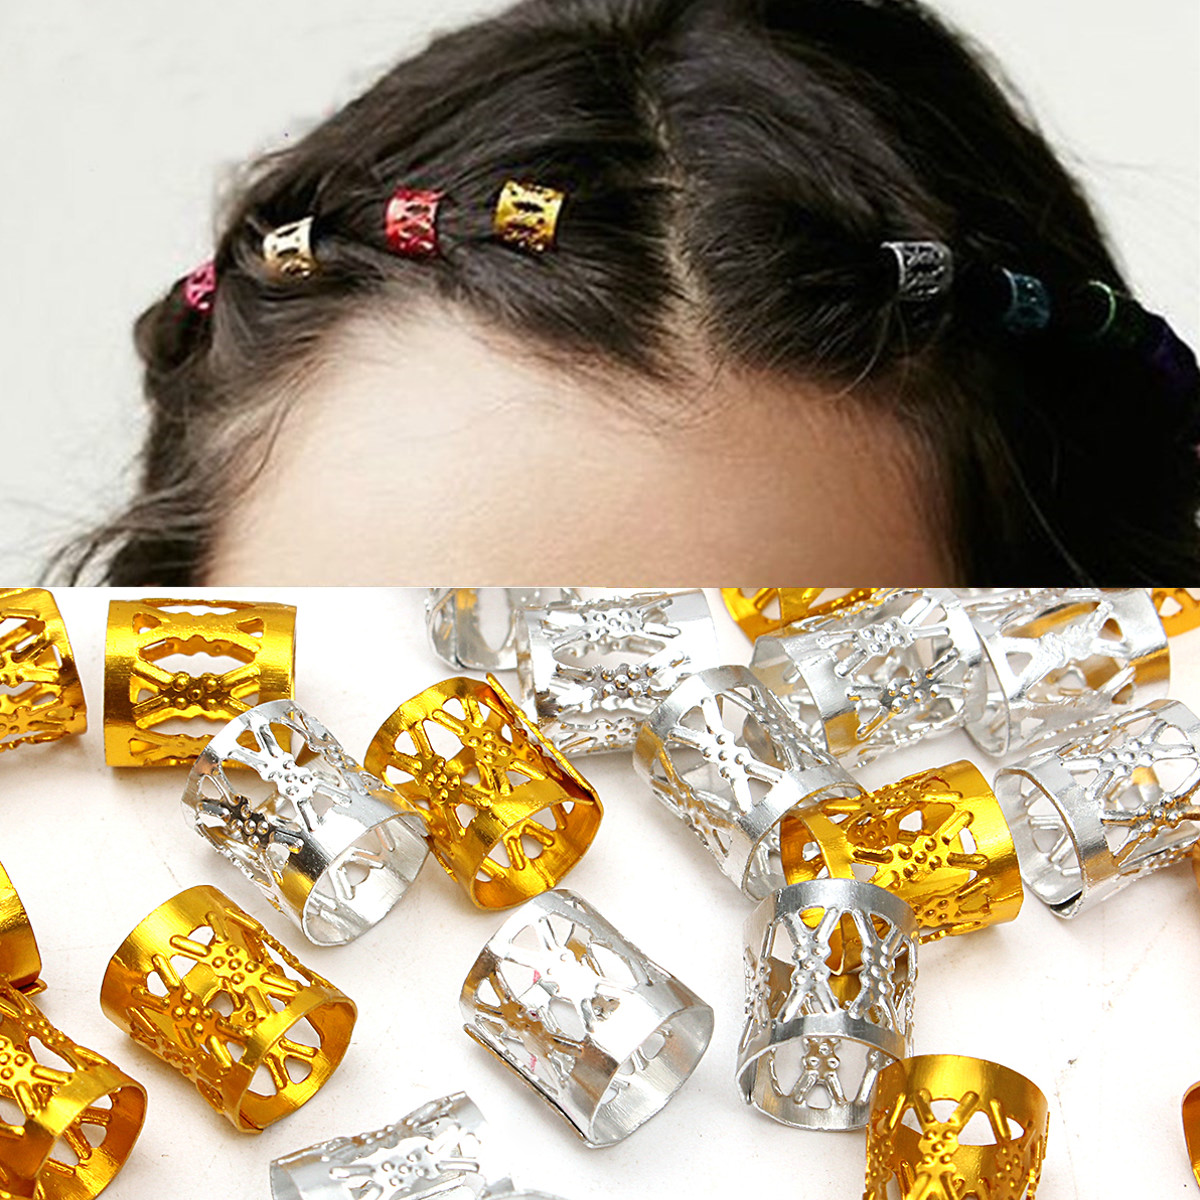 100Pcs 8mm Dreadlock Braiding Beads Braid Cuff Tubes Hair Clips Mixed Gold Silver Dreadlocks